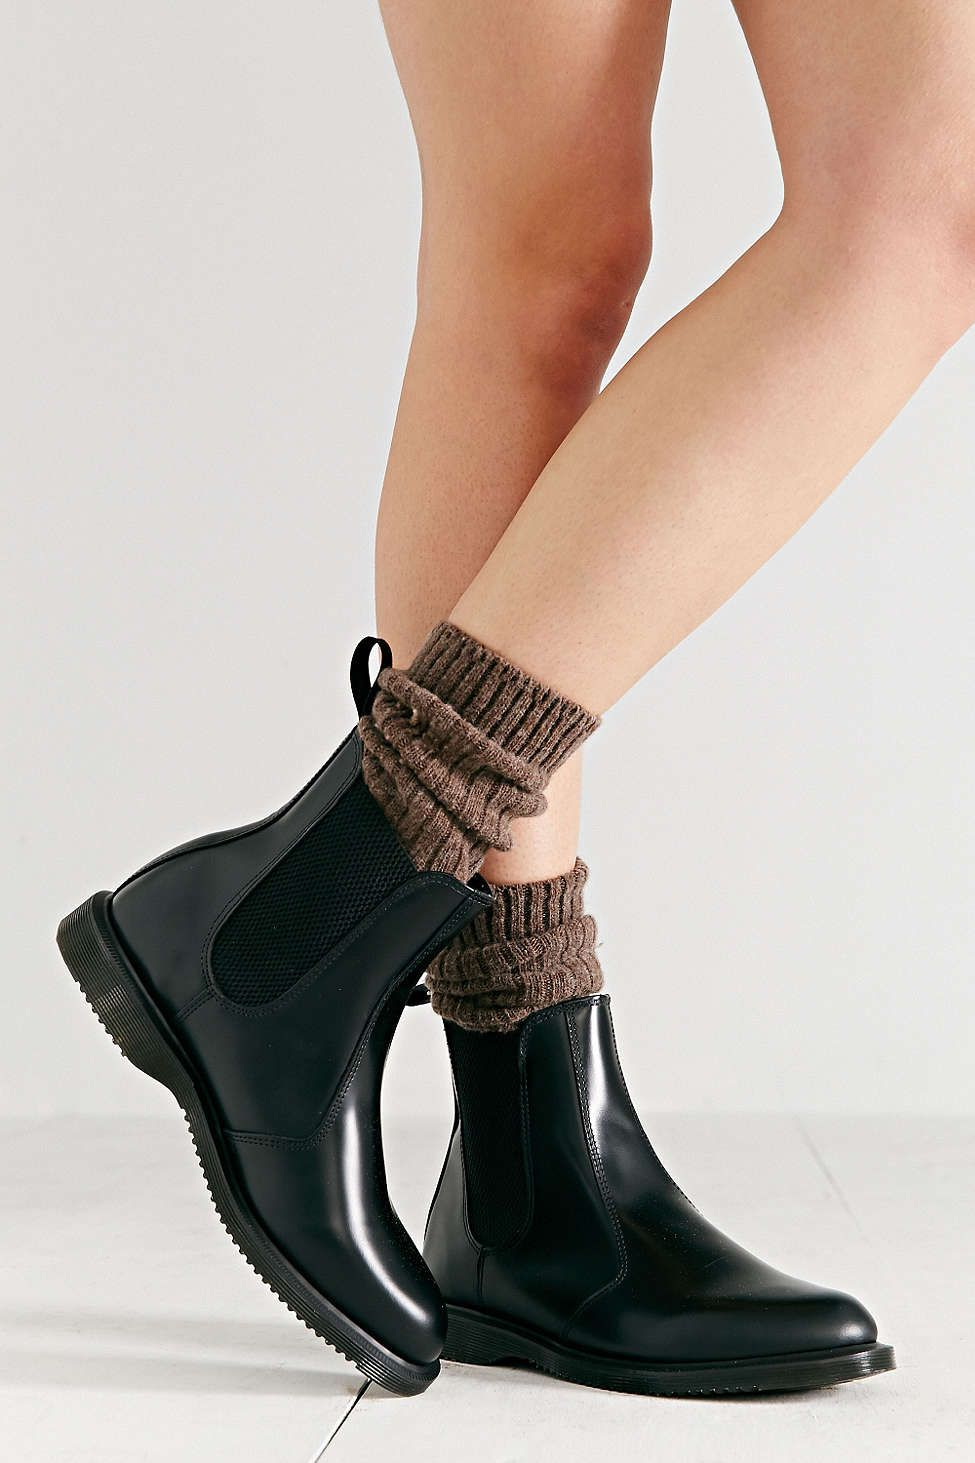 96b4e75bb1b ... womens shoes tight thigh high flat boots. Dr. Martens Flora Chelsea Ankle  Boot - Urban Outfitters LOVE these!! So pretty!! size 9